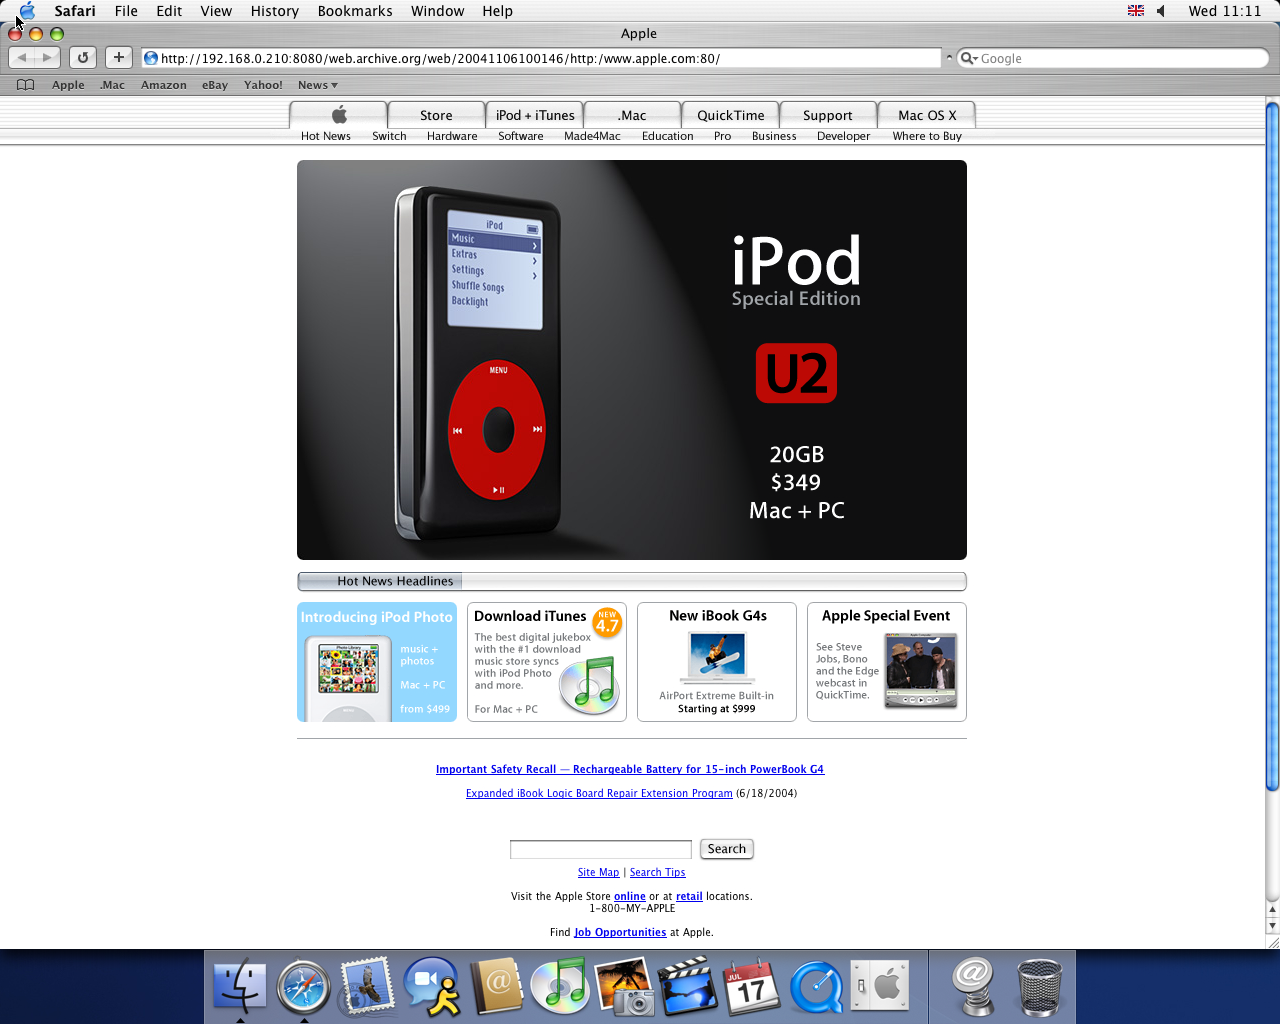 OS X 10.3 PPC with Safari 1.1 displaying a page from Apple.com archived at November 06, 2004 at 10:01:46